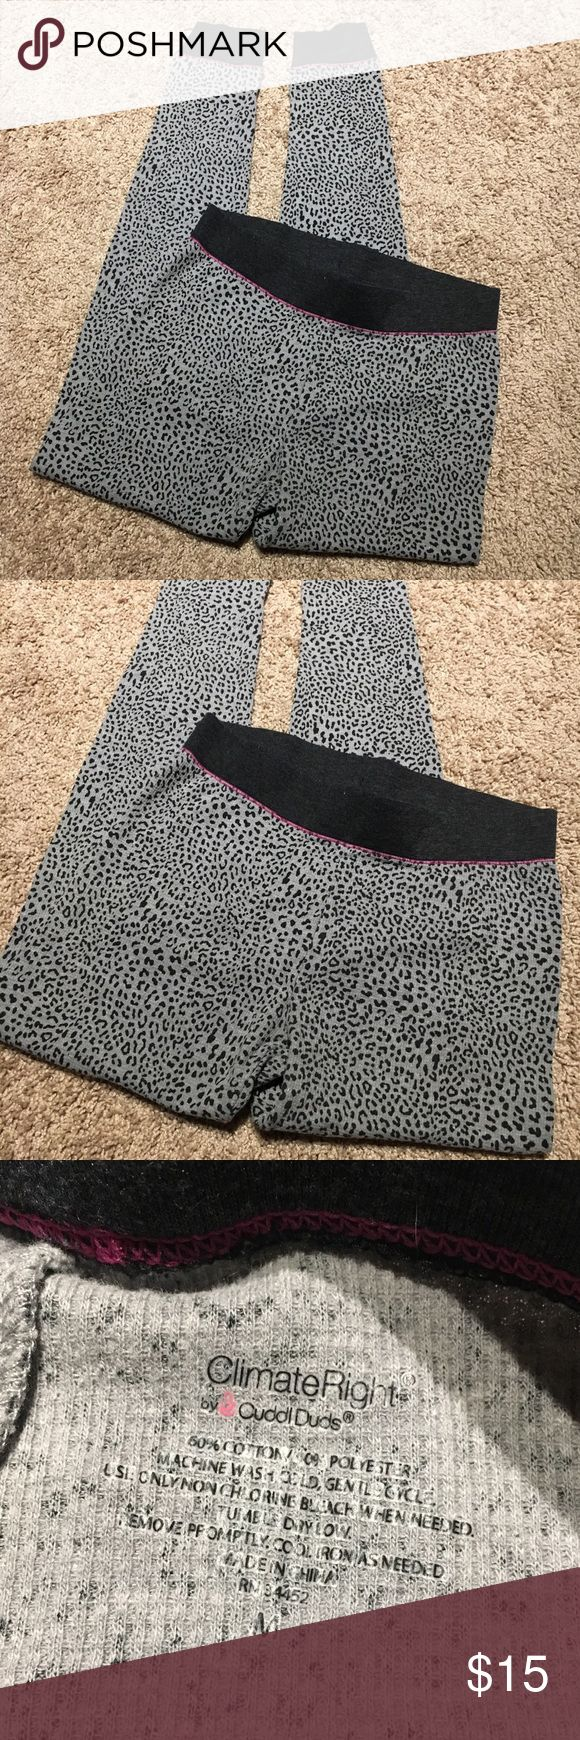 Leopard print leggings Climate Right leggings / pants! Perfect to wear to work out, under ski pants, or just for going out! Size medium. I offer discounts for bundles and welcome offers :) Pants Leggings